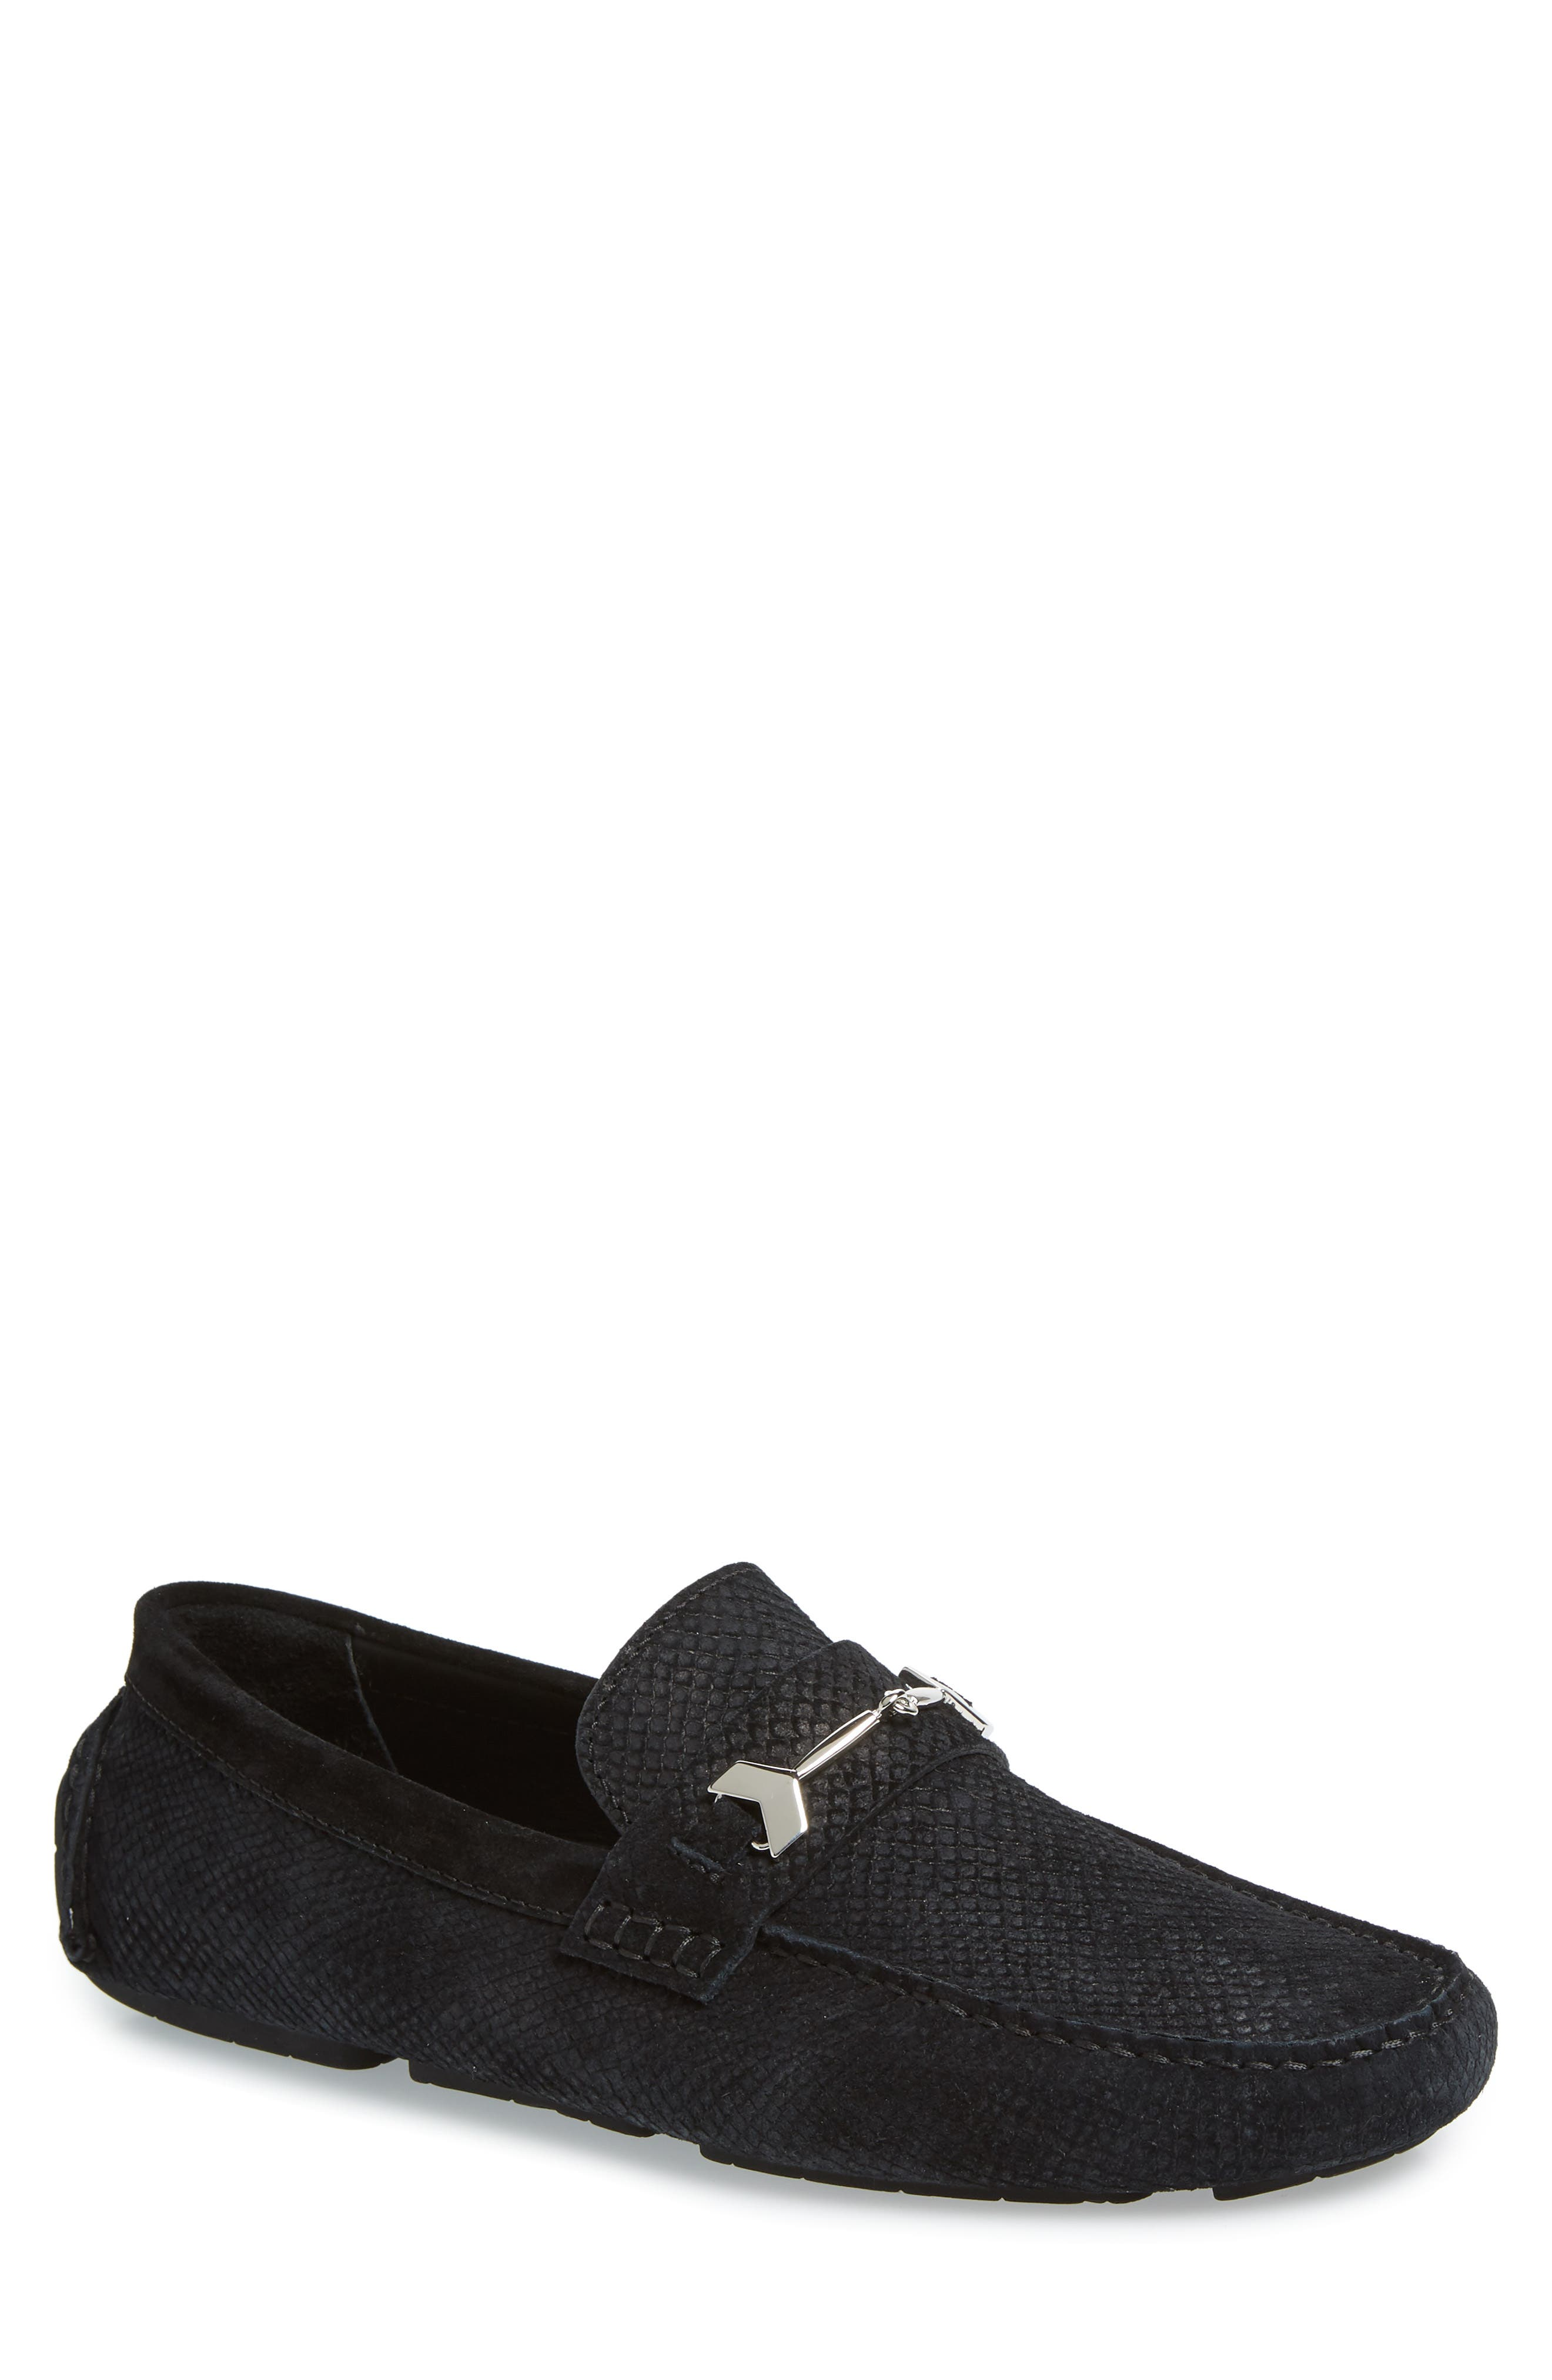 Brewer Croc Textured Driving Loafer,                             Main thumbnail 1, color,                             BLACK/BLACK